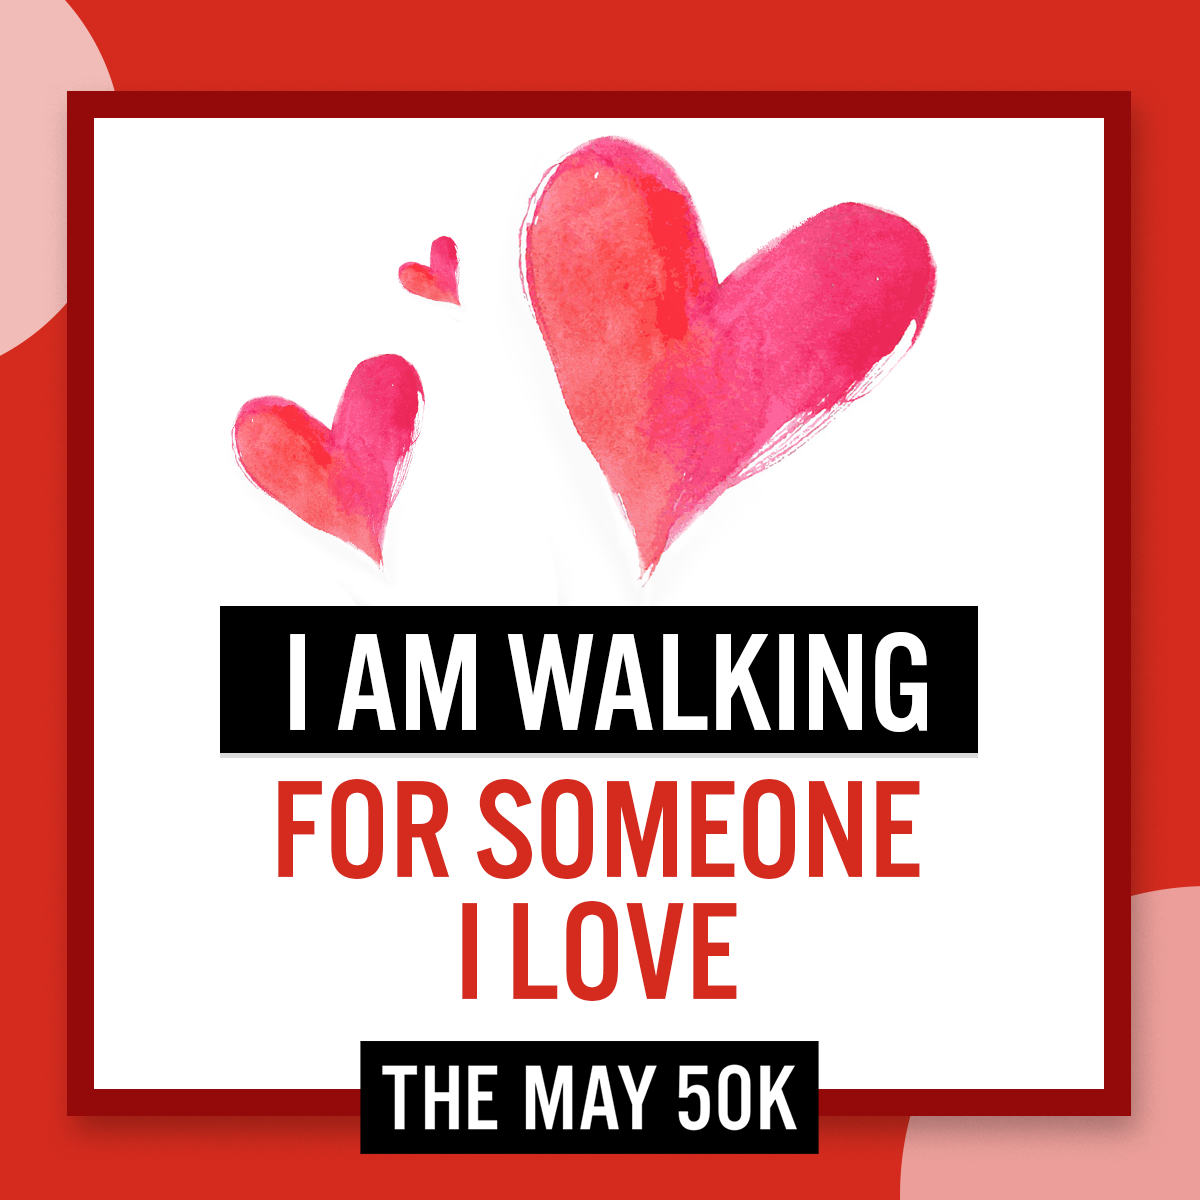 Walk For Someone Love